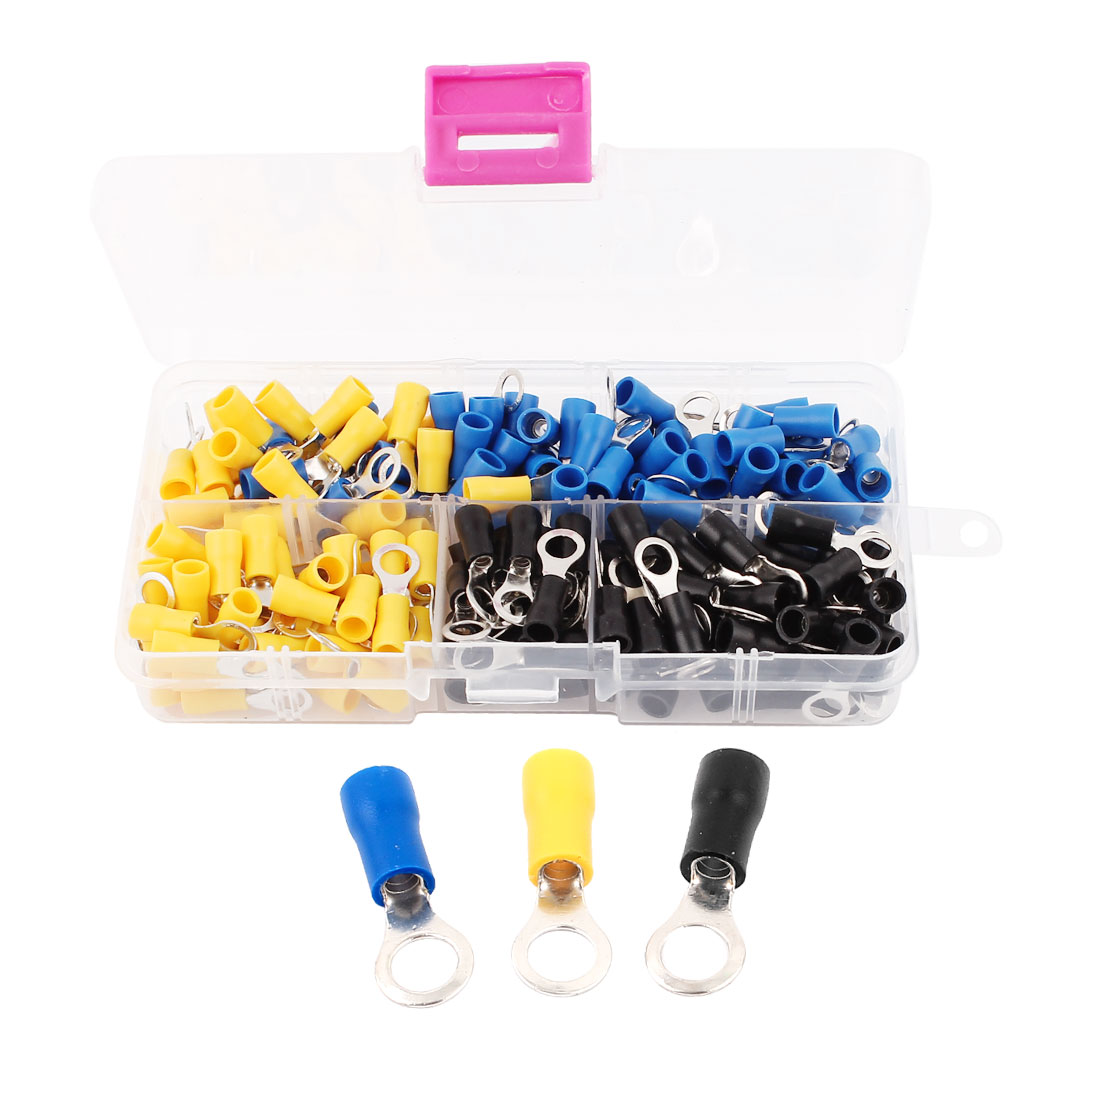 180pcs RVS2-5 Yellow Blue Black Sleeve Pre Insulated Ring Terminals Cable Wiring Connector for AWG 16-14 Wire